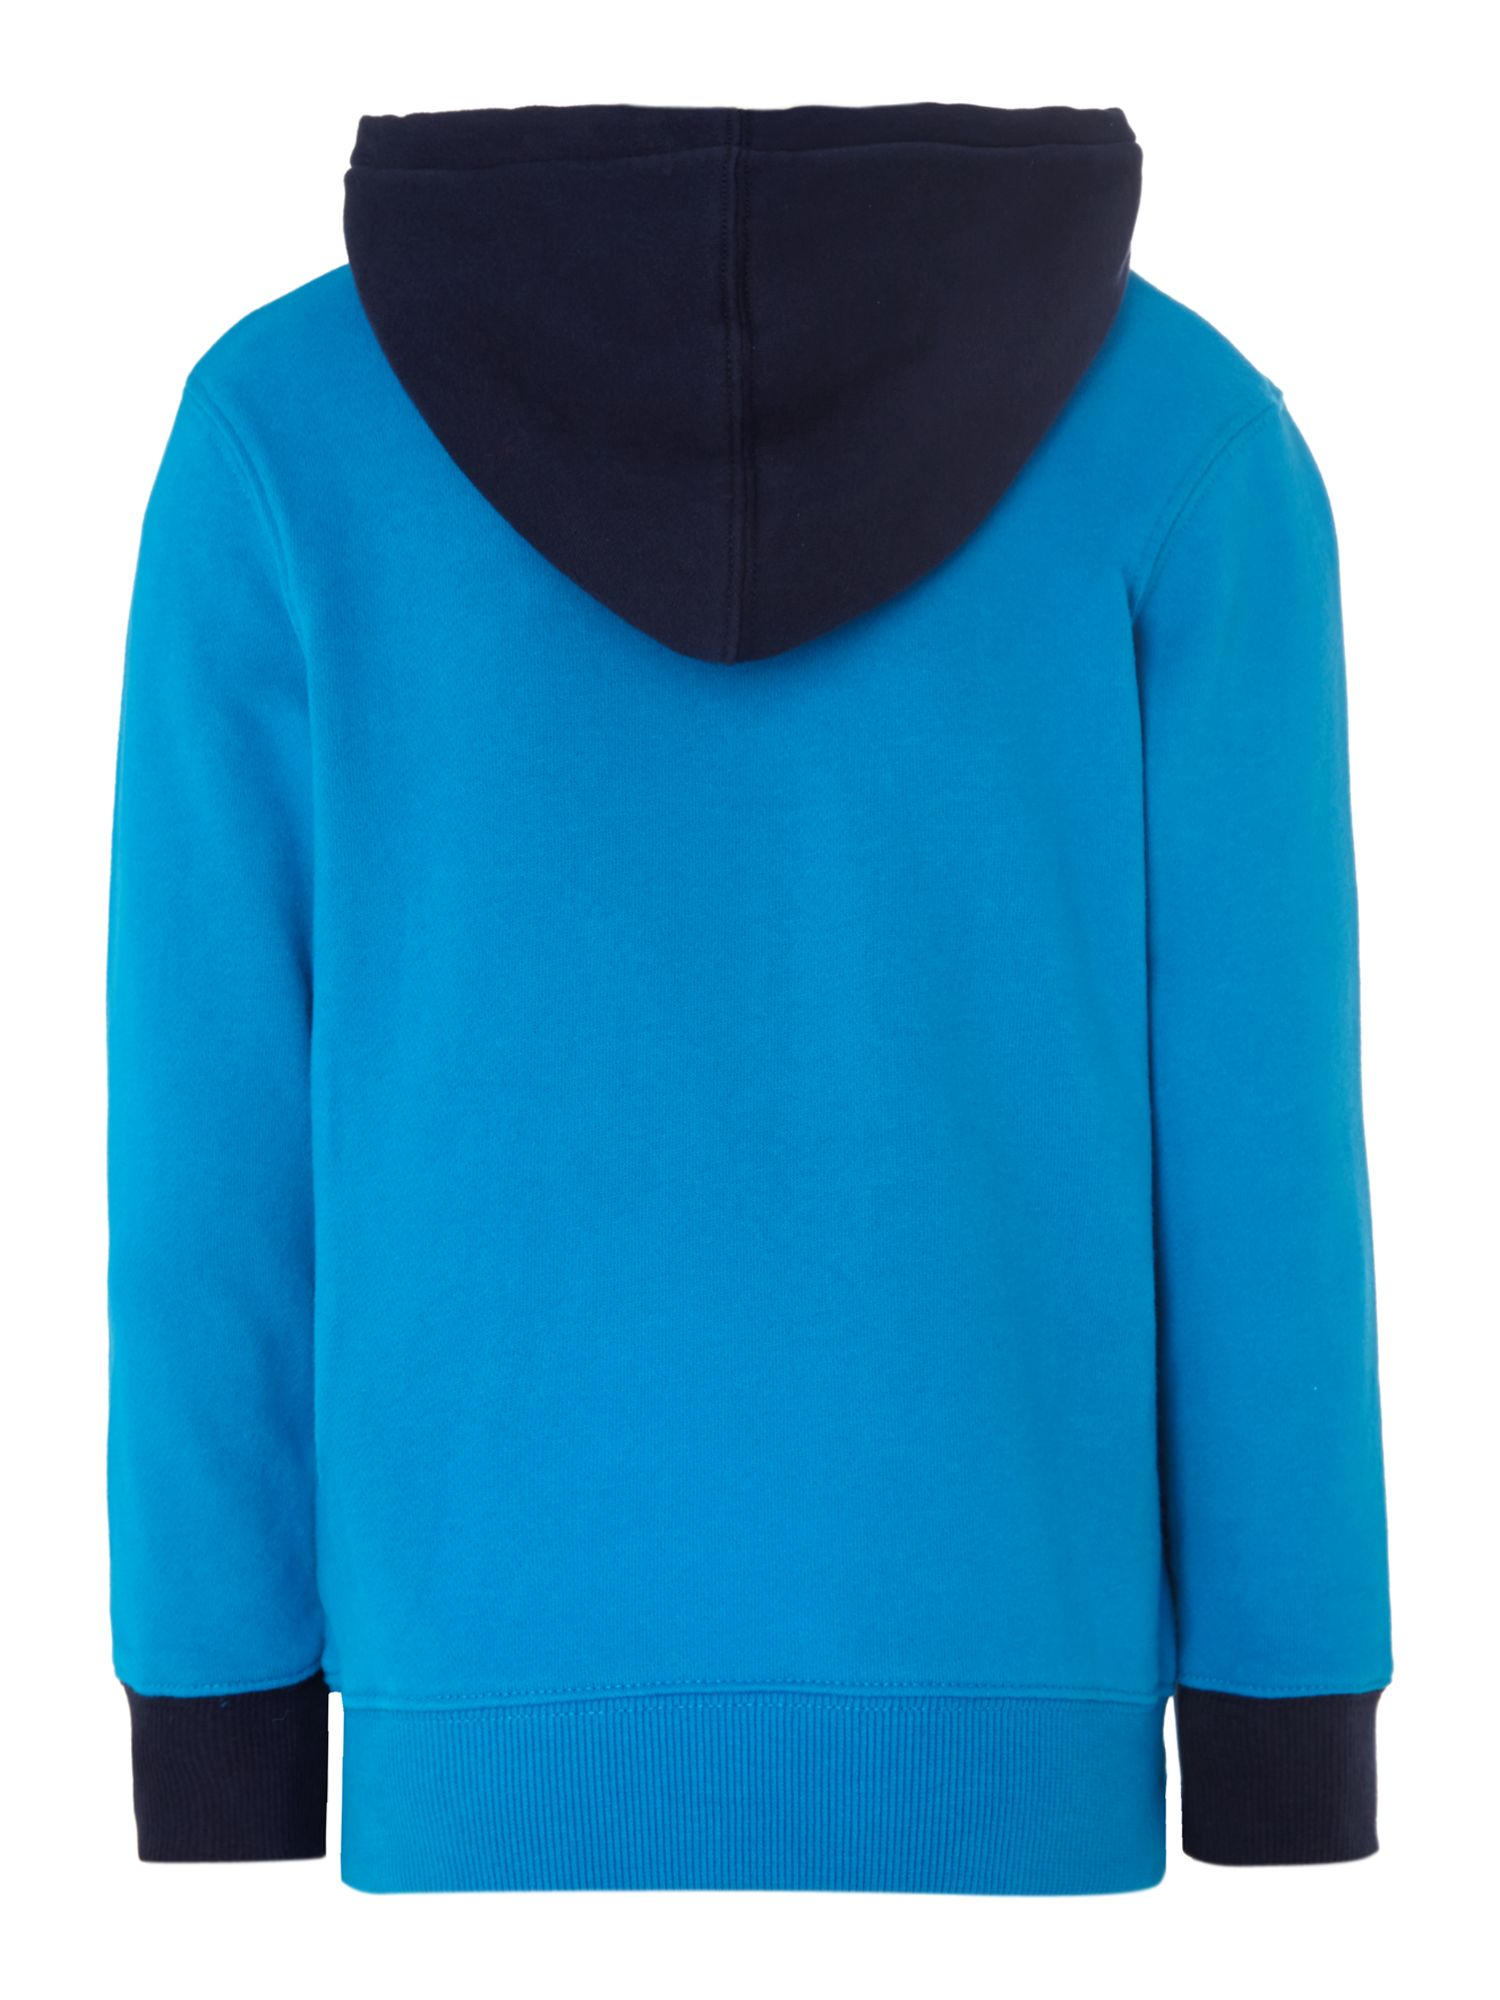 Boy`s fleece lined hooded top